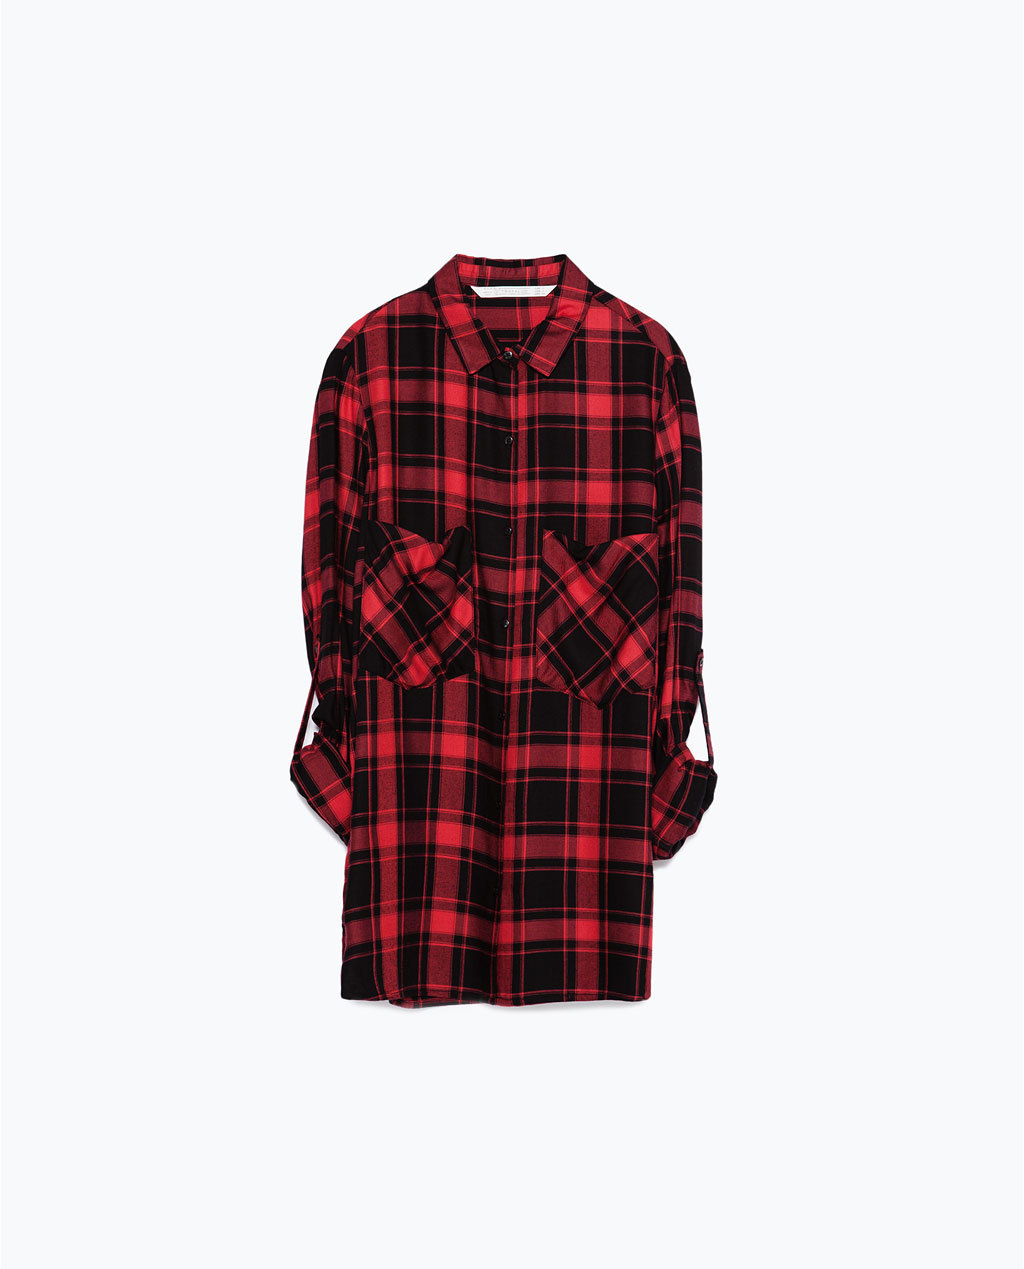 Check Shirt - neckline: shirt collar/peter pan/zip with opening; pattern: checked/gingham; style: shirt; predominant colour: true red; secondary colour: black; occasions: casual, creative work; fibres: viscose/rayon - 100%; fit: loose; length: mid thigh; sleeve length: long sleeve; sleeve style: standard; texture group: cotton feel fabrics; pattern type: fabric; multicoloured: multicoloured; season: a/w 2015; trends: plaid and simple; wardrobe: highlight